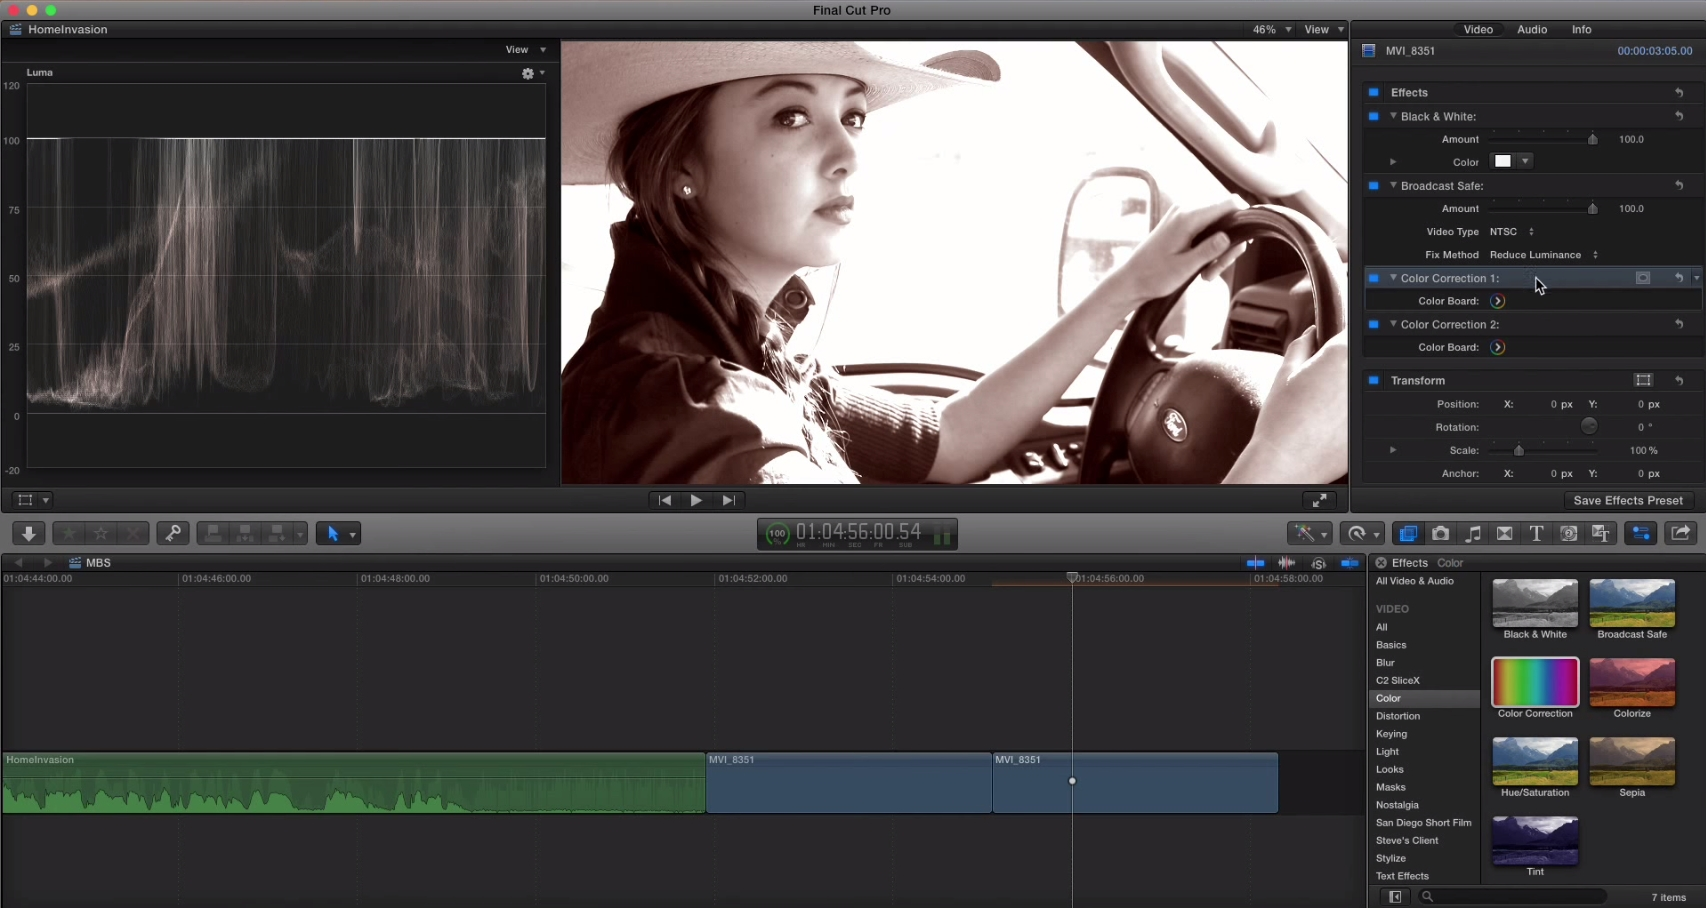 The Effects Processing Pipeline in Final Cut Pro X 2